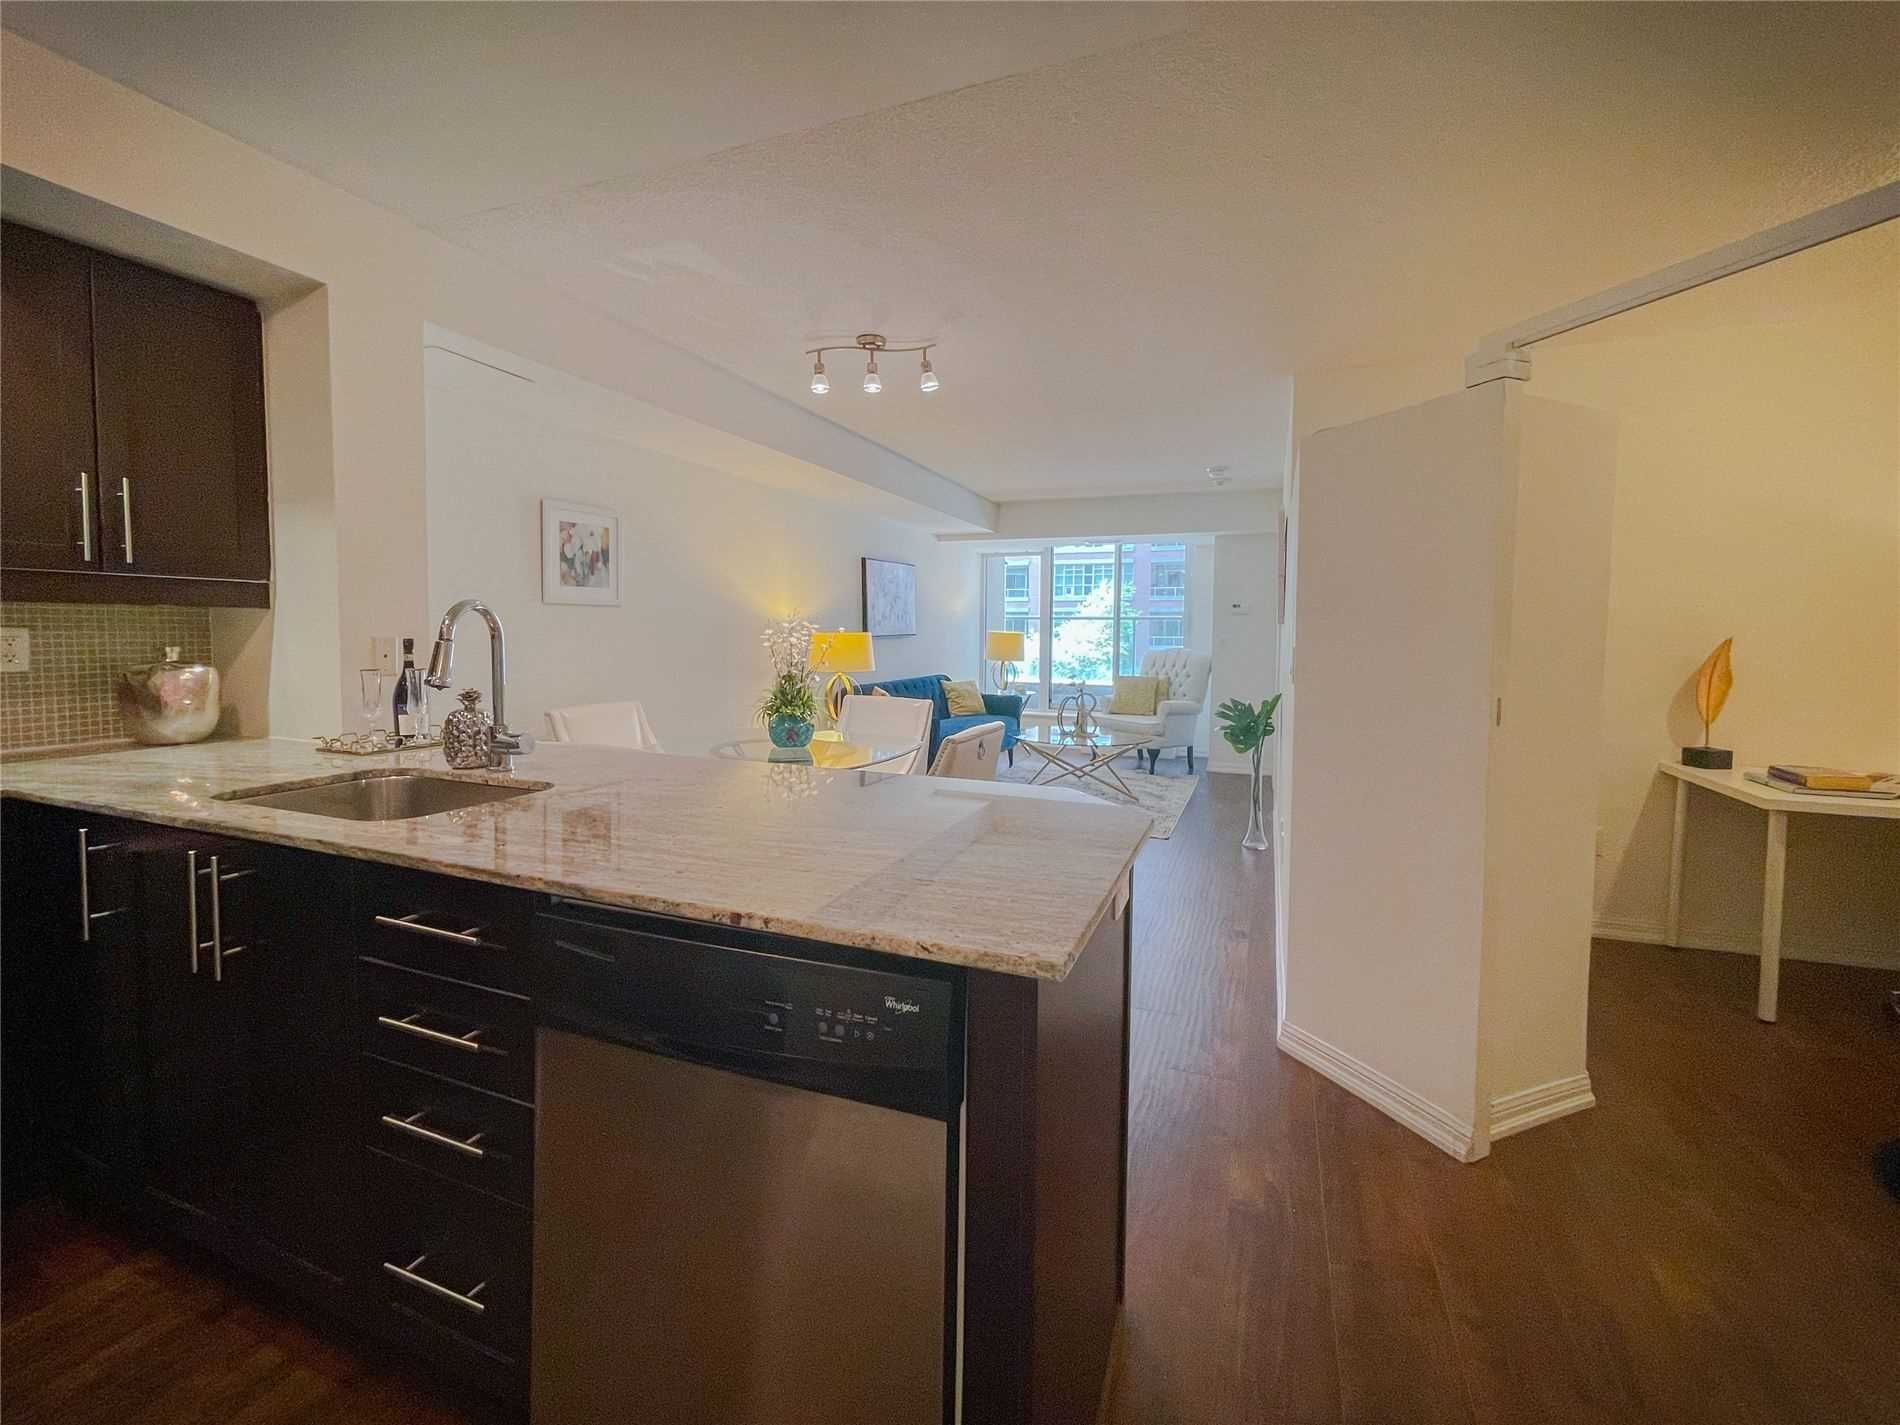 75 East Liberty St, unit 412 for sale in Toronto - image #1